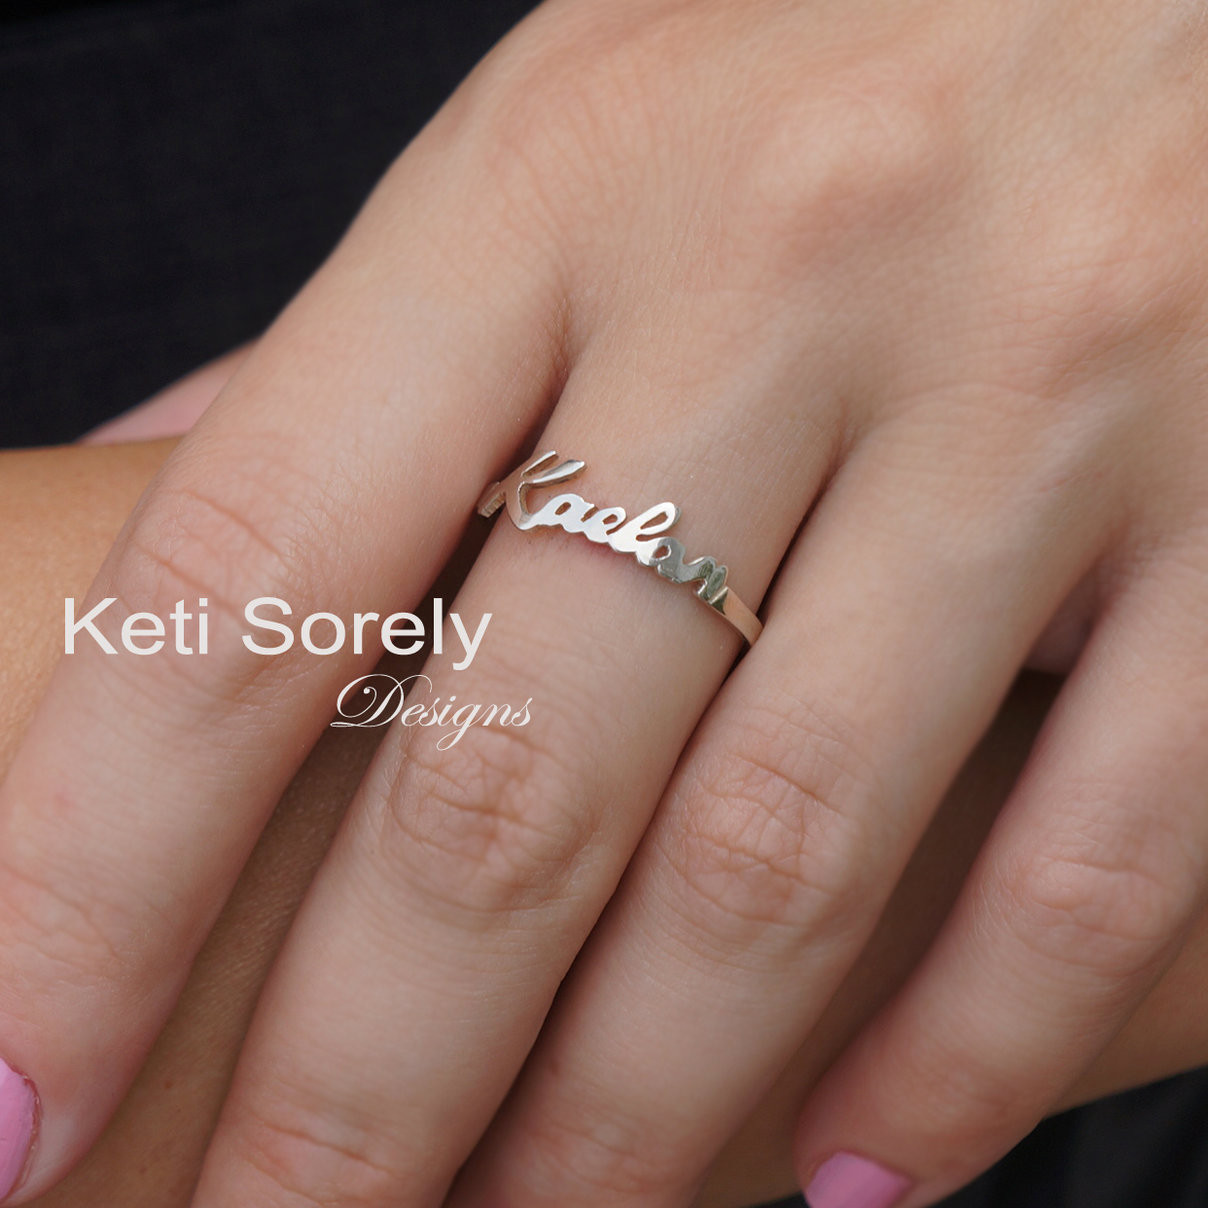 Celebrity Style Dainty Name Ring Handmade From Sterling Silver Or